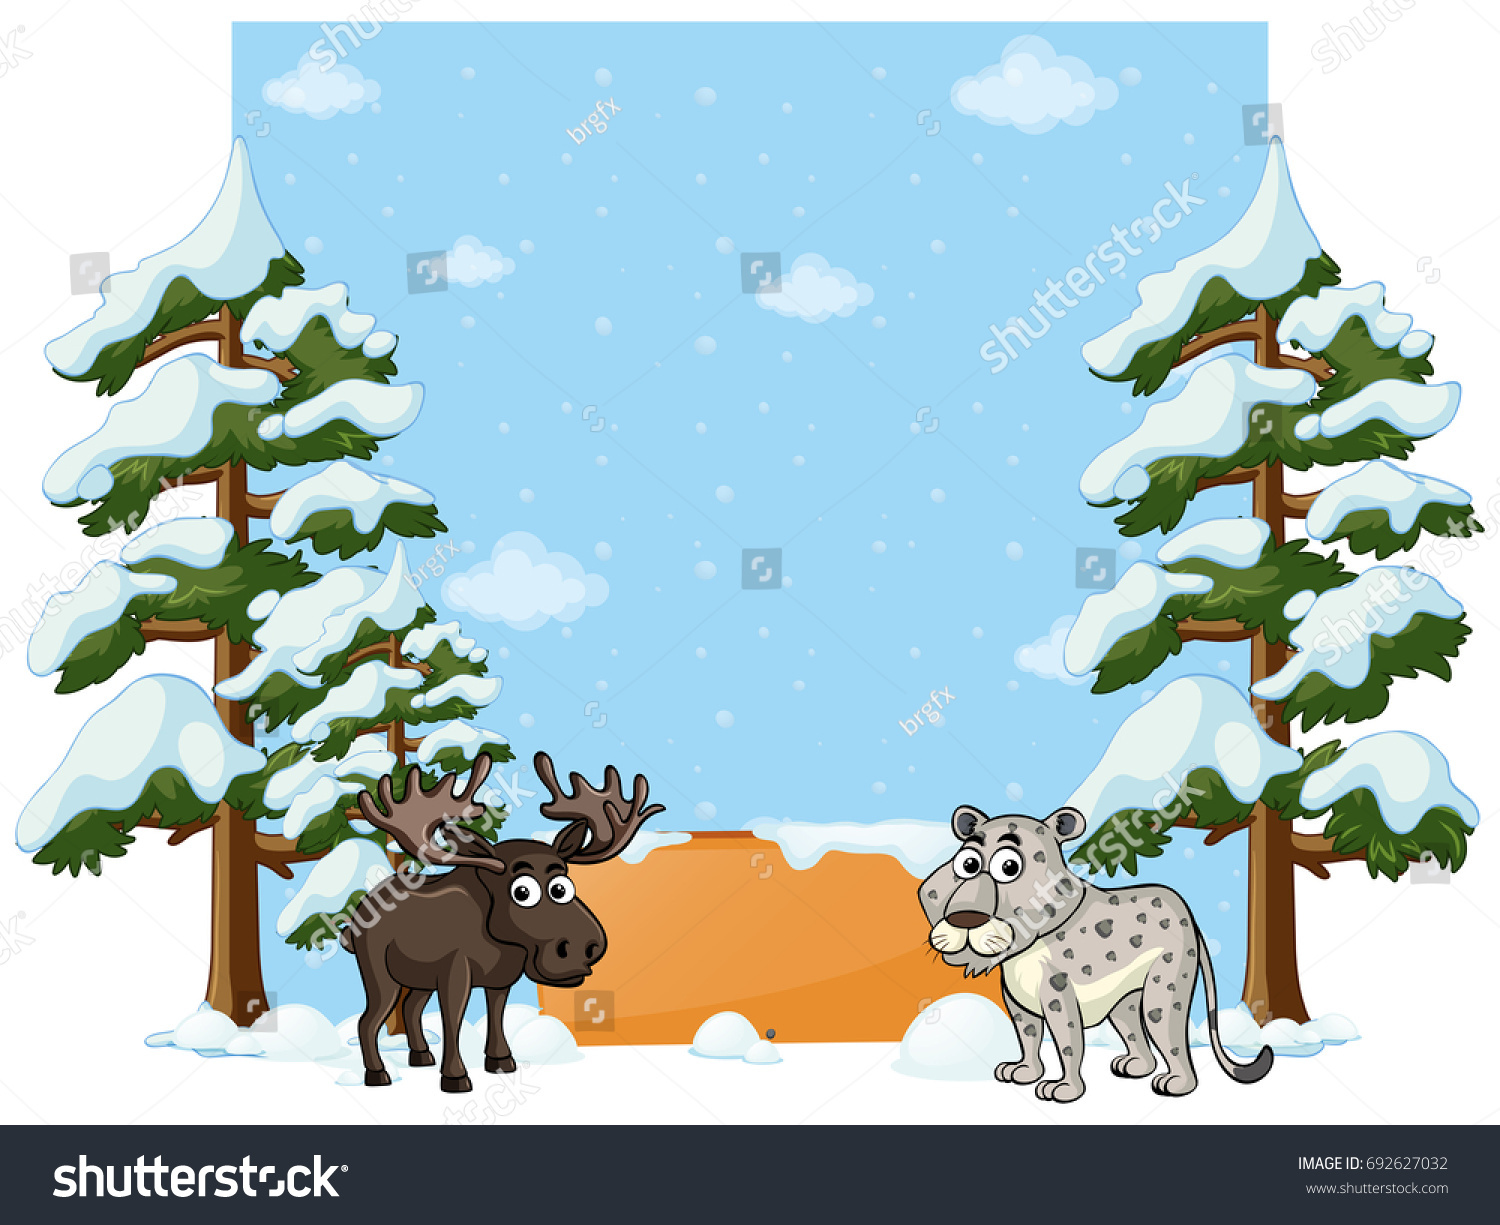 Banner Design Cheetah Moose Illustration Stock Photo Photo Vector